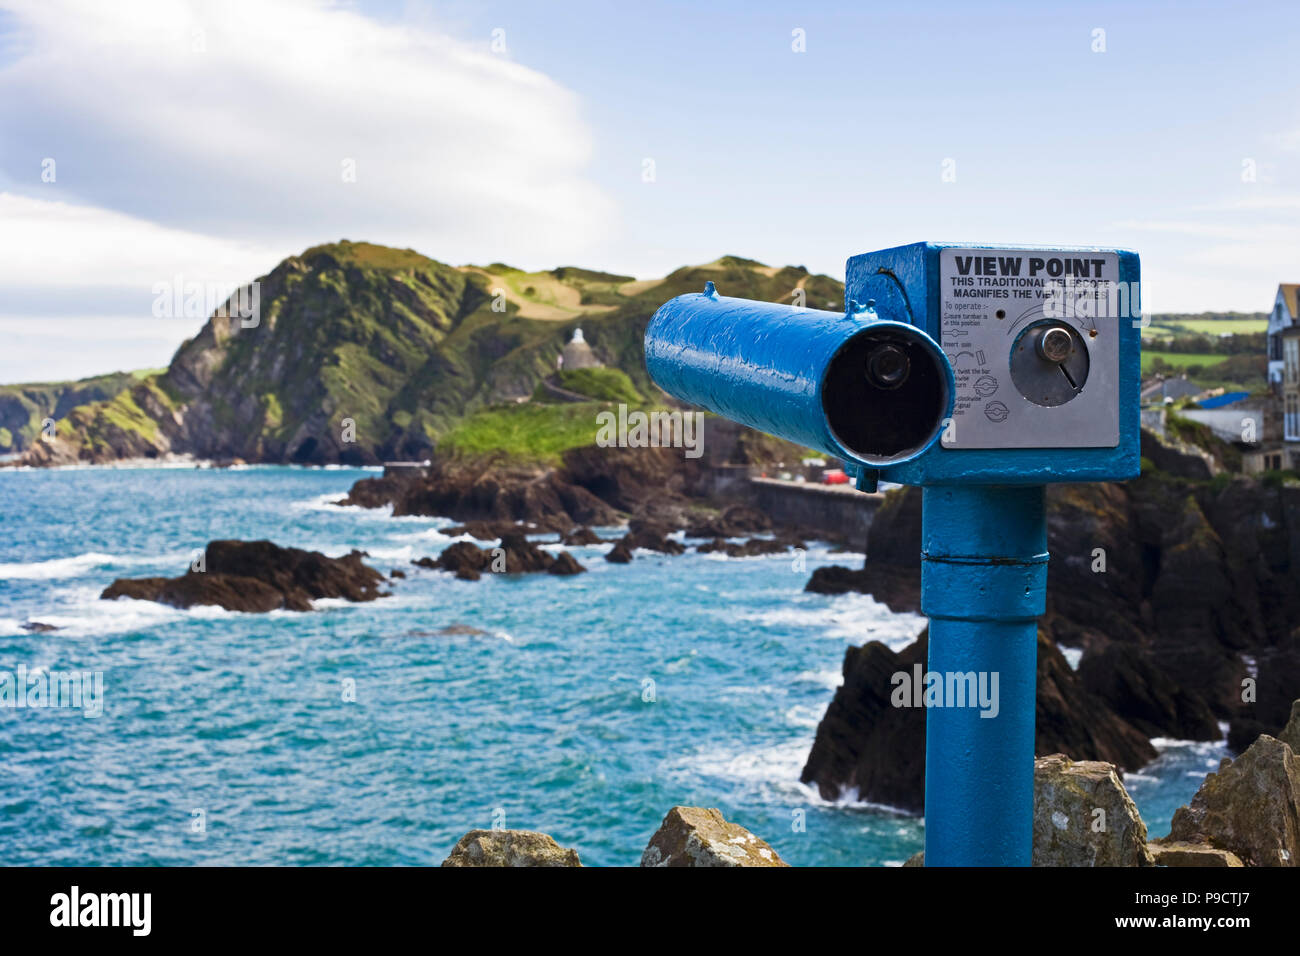 Coin operated telescope overlooking the rocky coastline at the seaside town of Ilfracombe, North Devon, England, UK - Stock Image